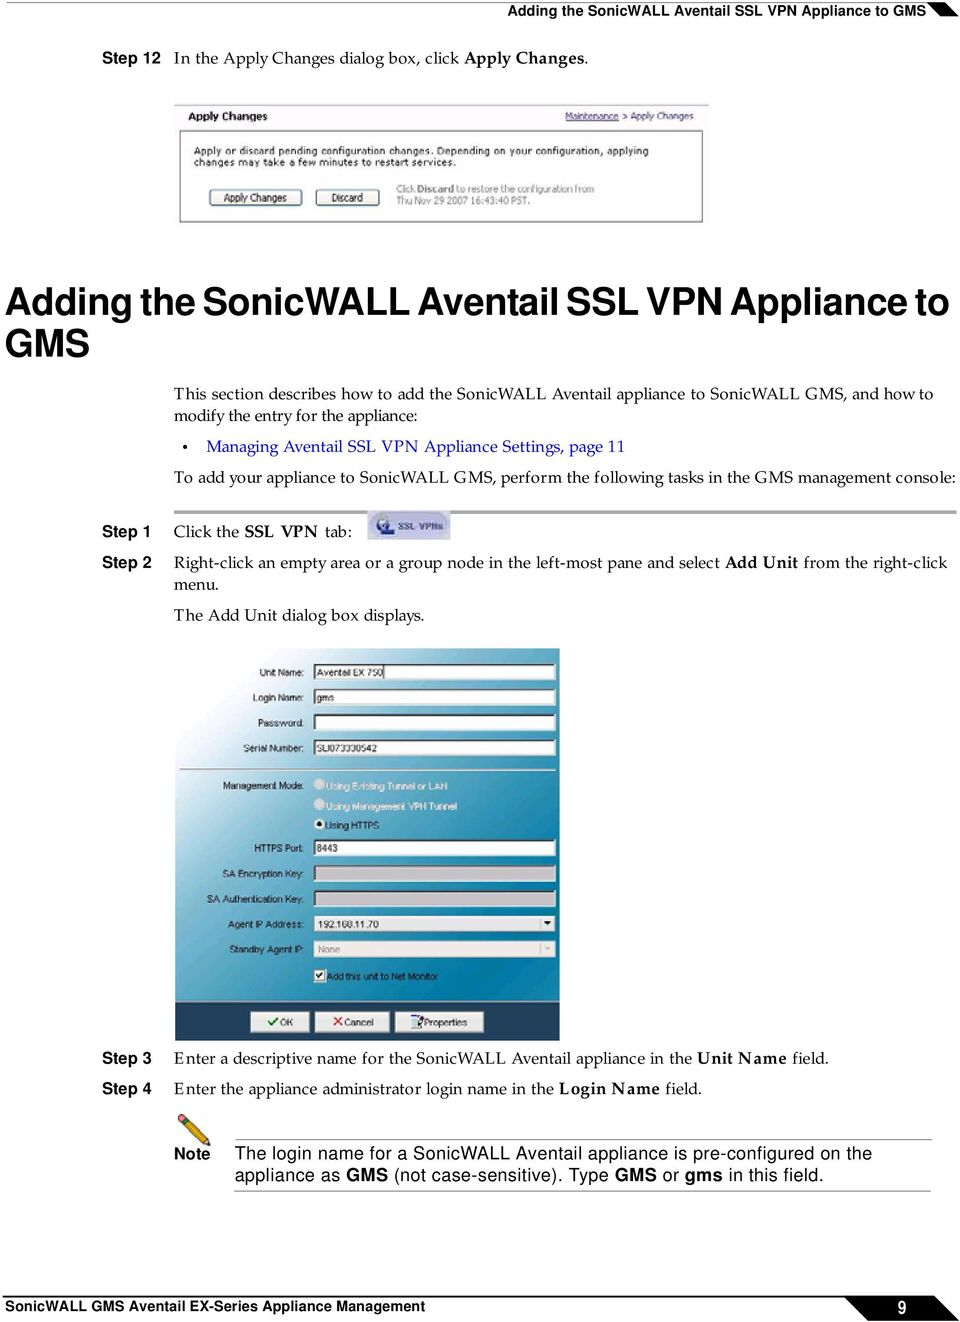 Aventail SSL VPN Appliance Settings, page 11 To add your appliance to SonicWALL GMS, perform the following tasks in the GMS management console: Click the SSL VPN tab: Right-click an empty area or a